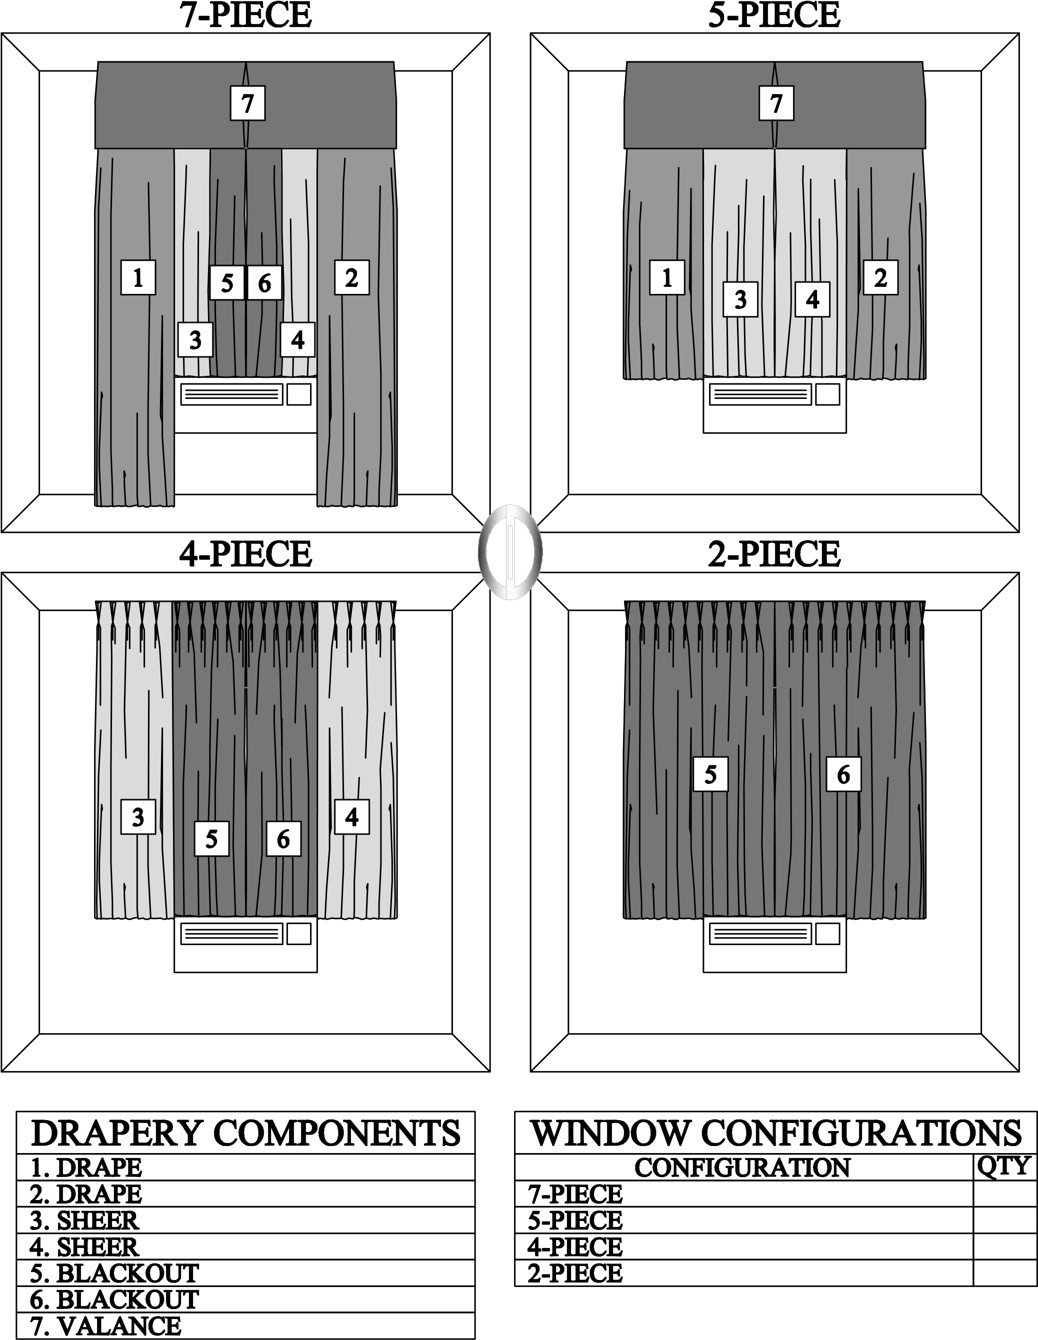 window-configurations-all